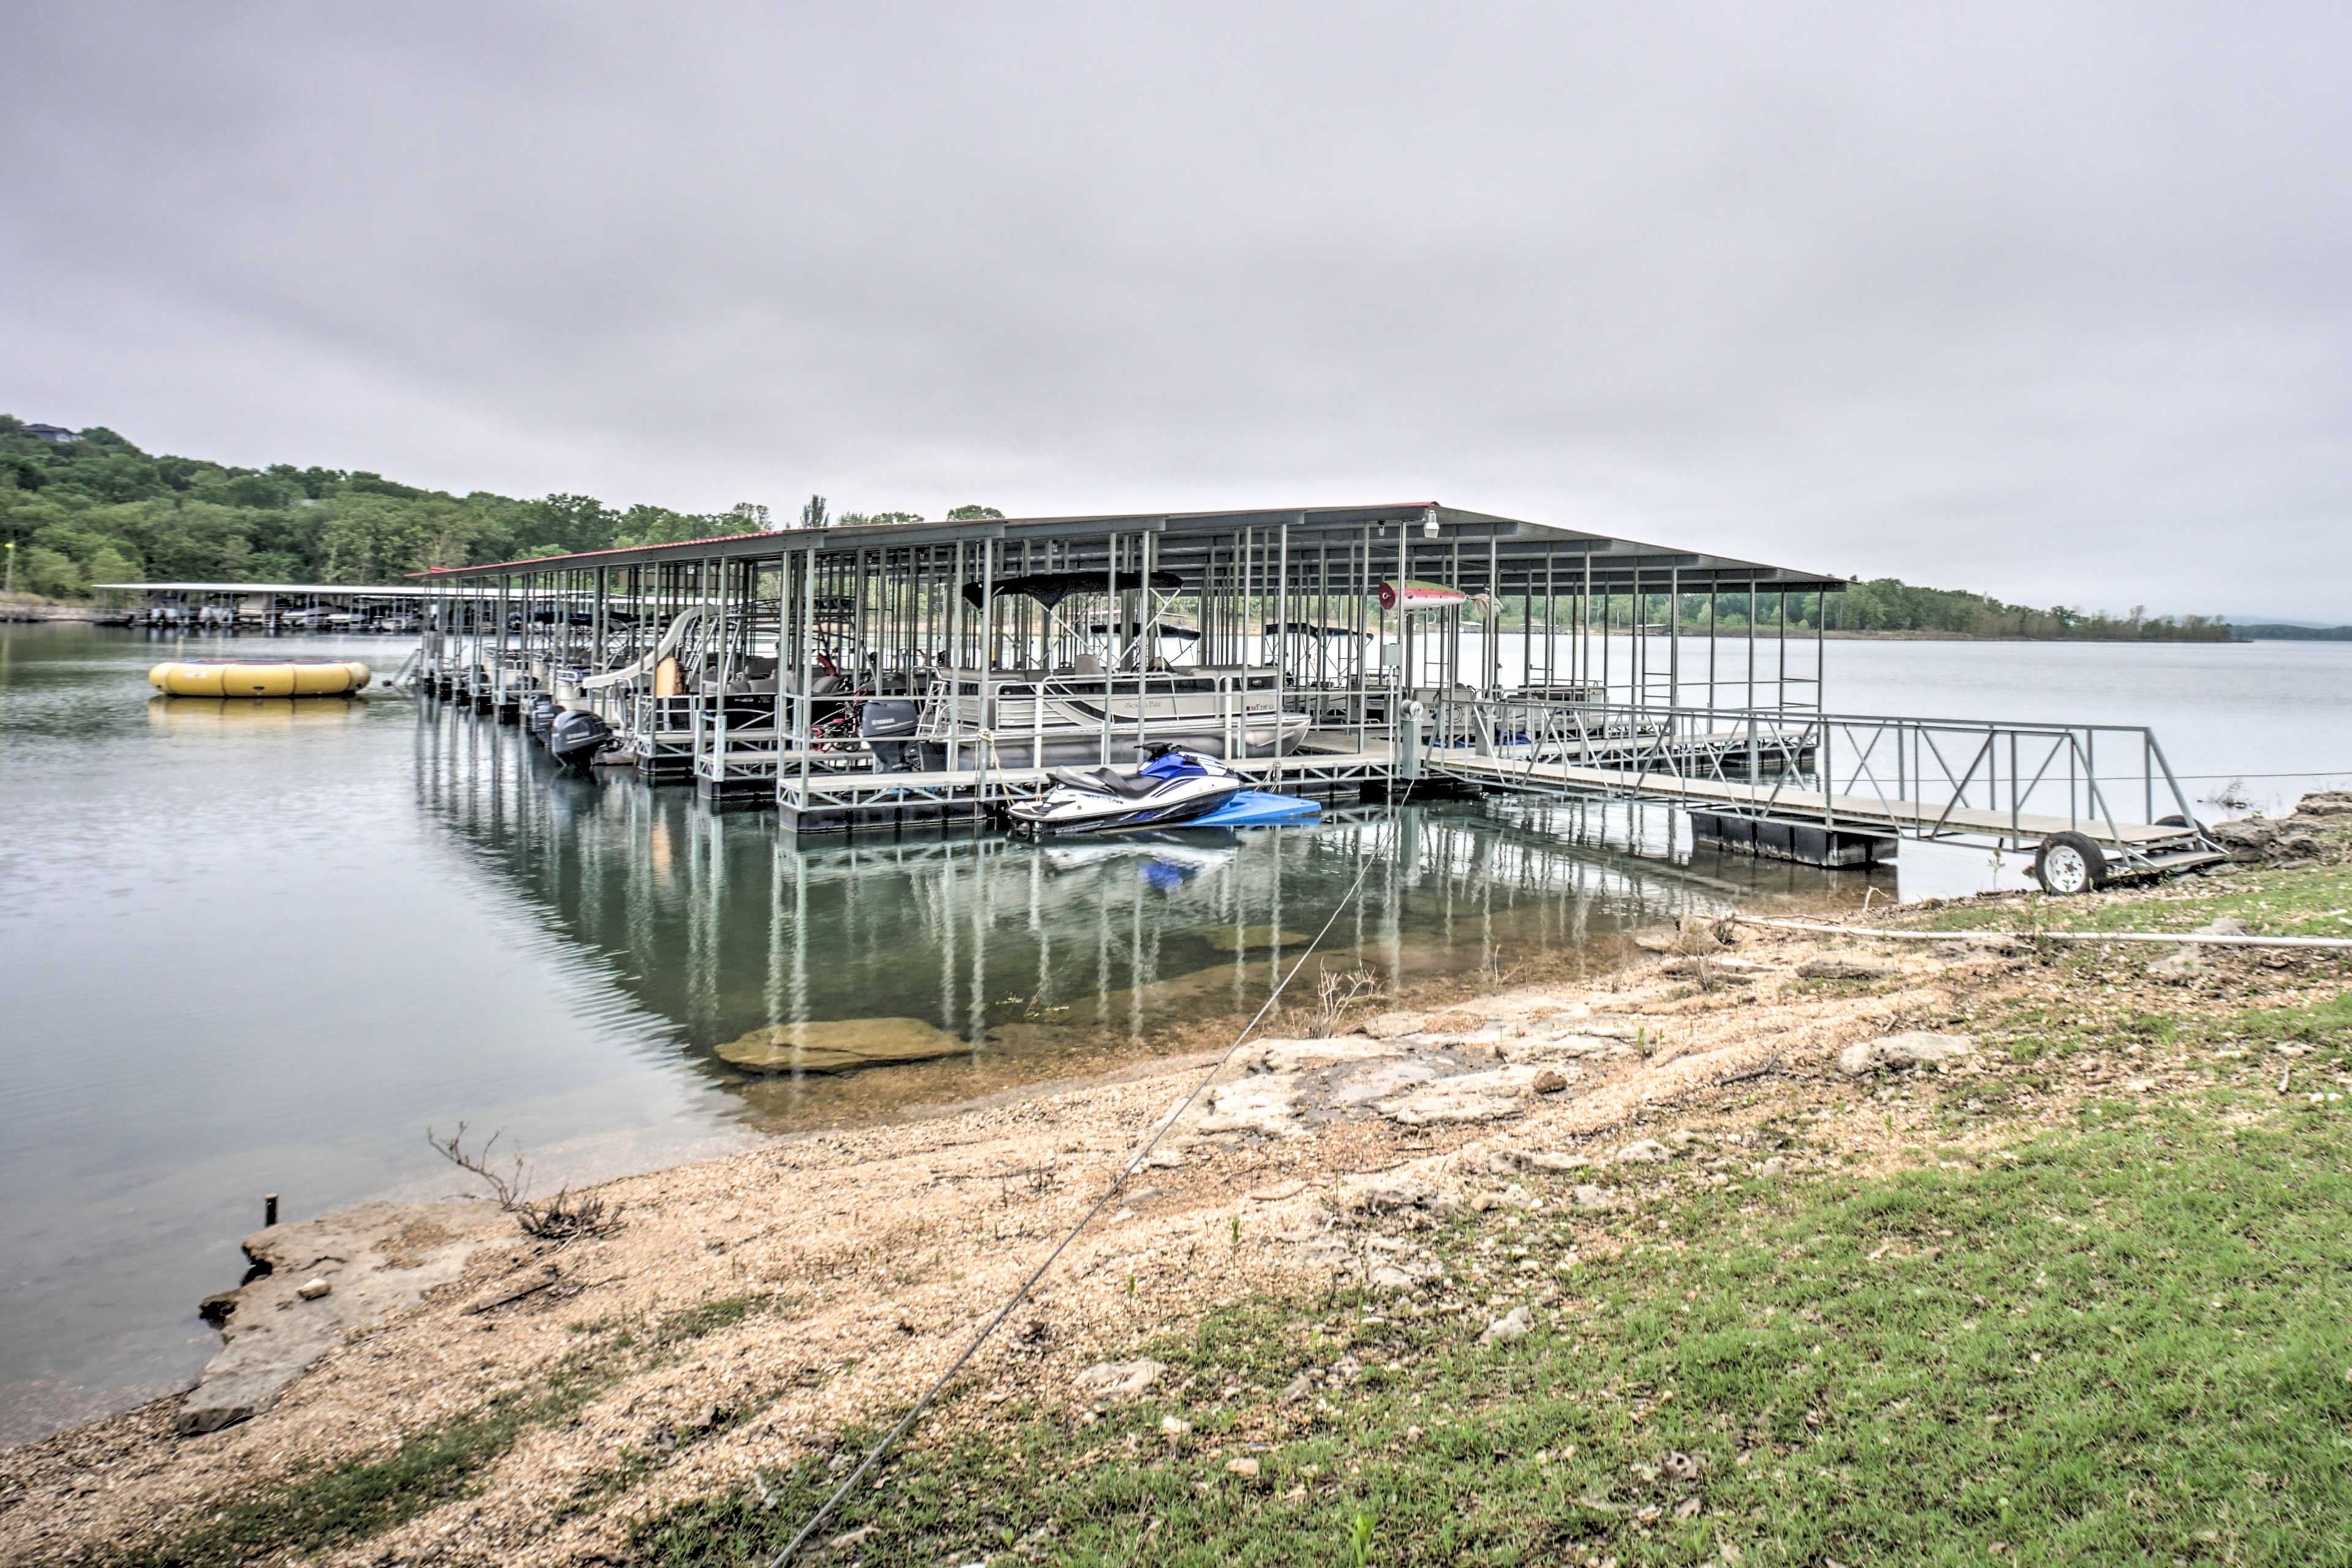 This condo has a pontoon boat available for guest use!